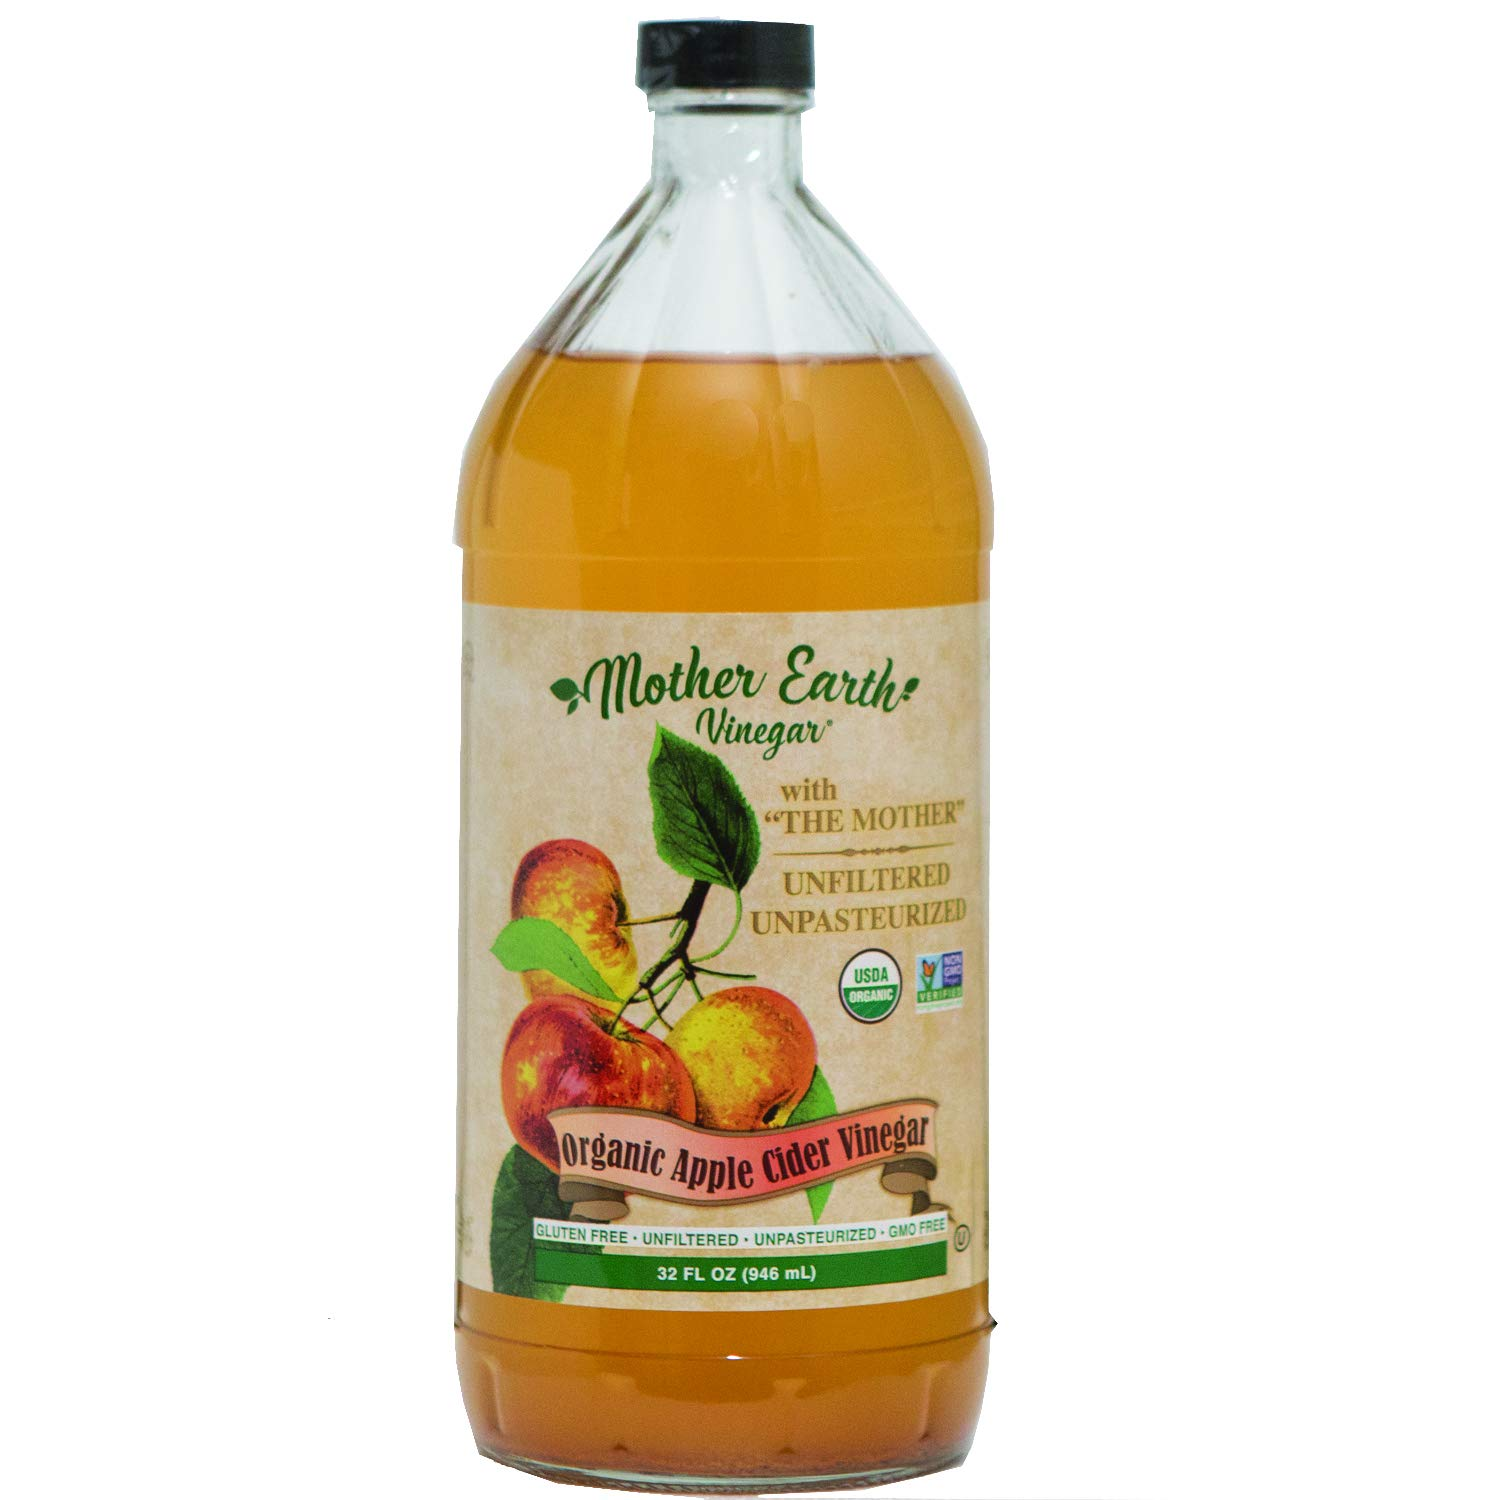 Mother Earth, Organic Apple Cider Vinegar